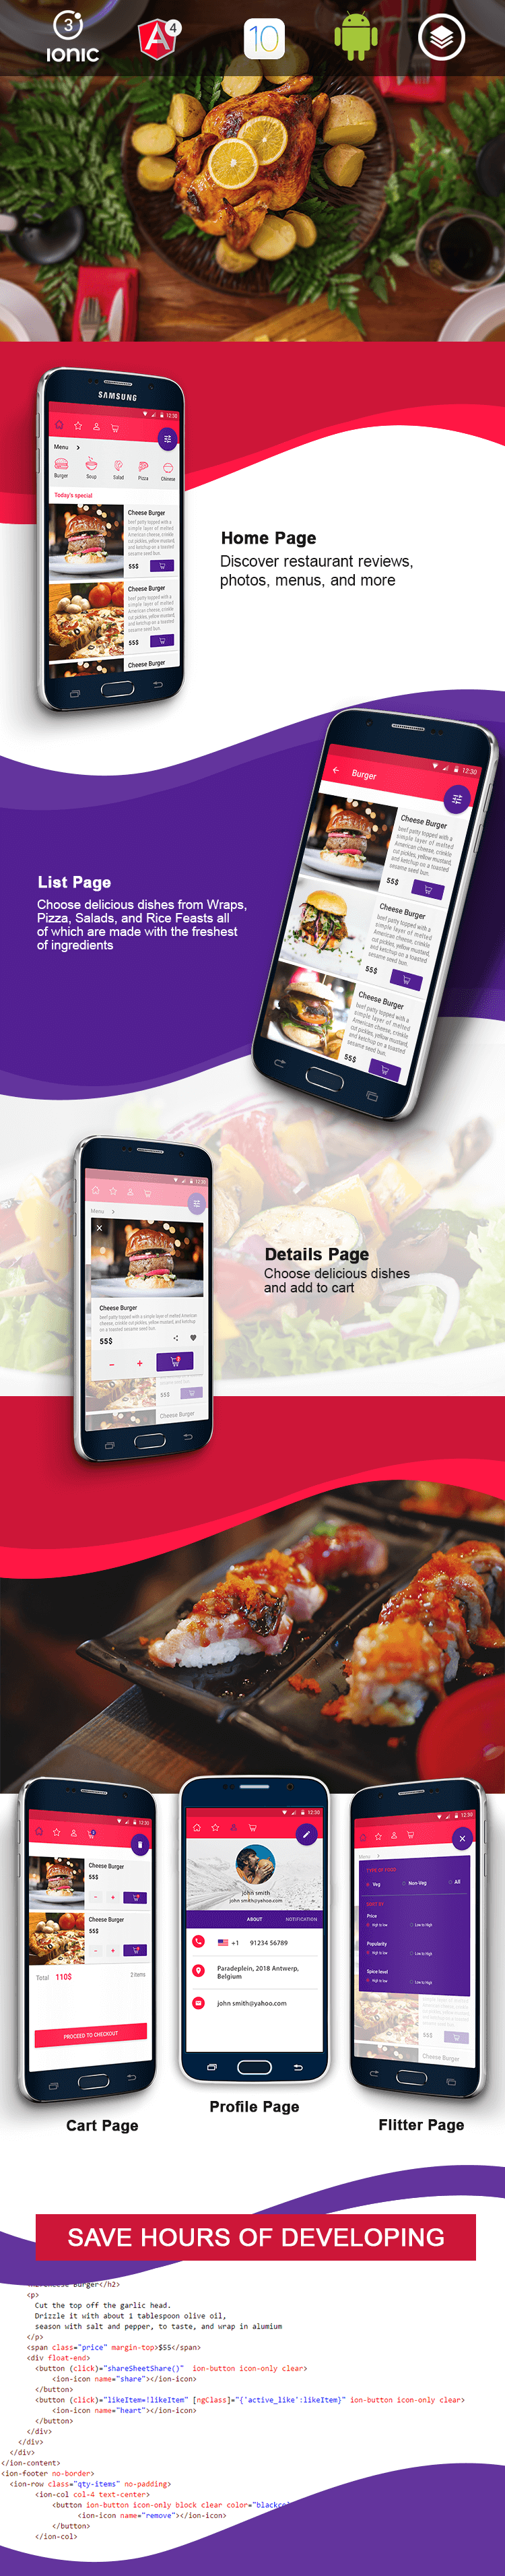 Le Chef - for Online Food Ordering-ionic app theme